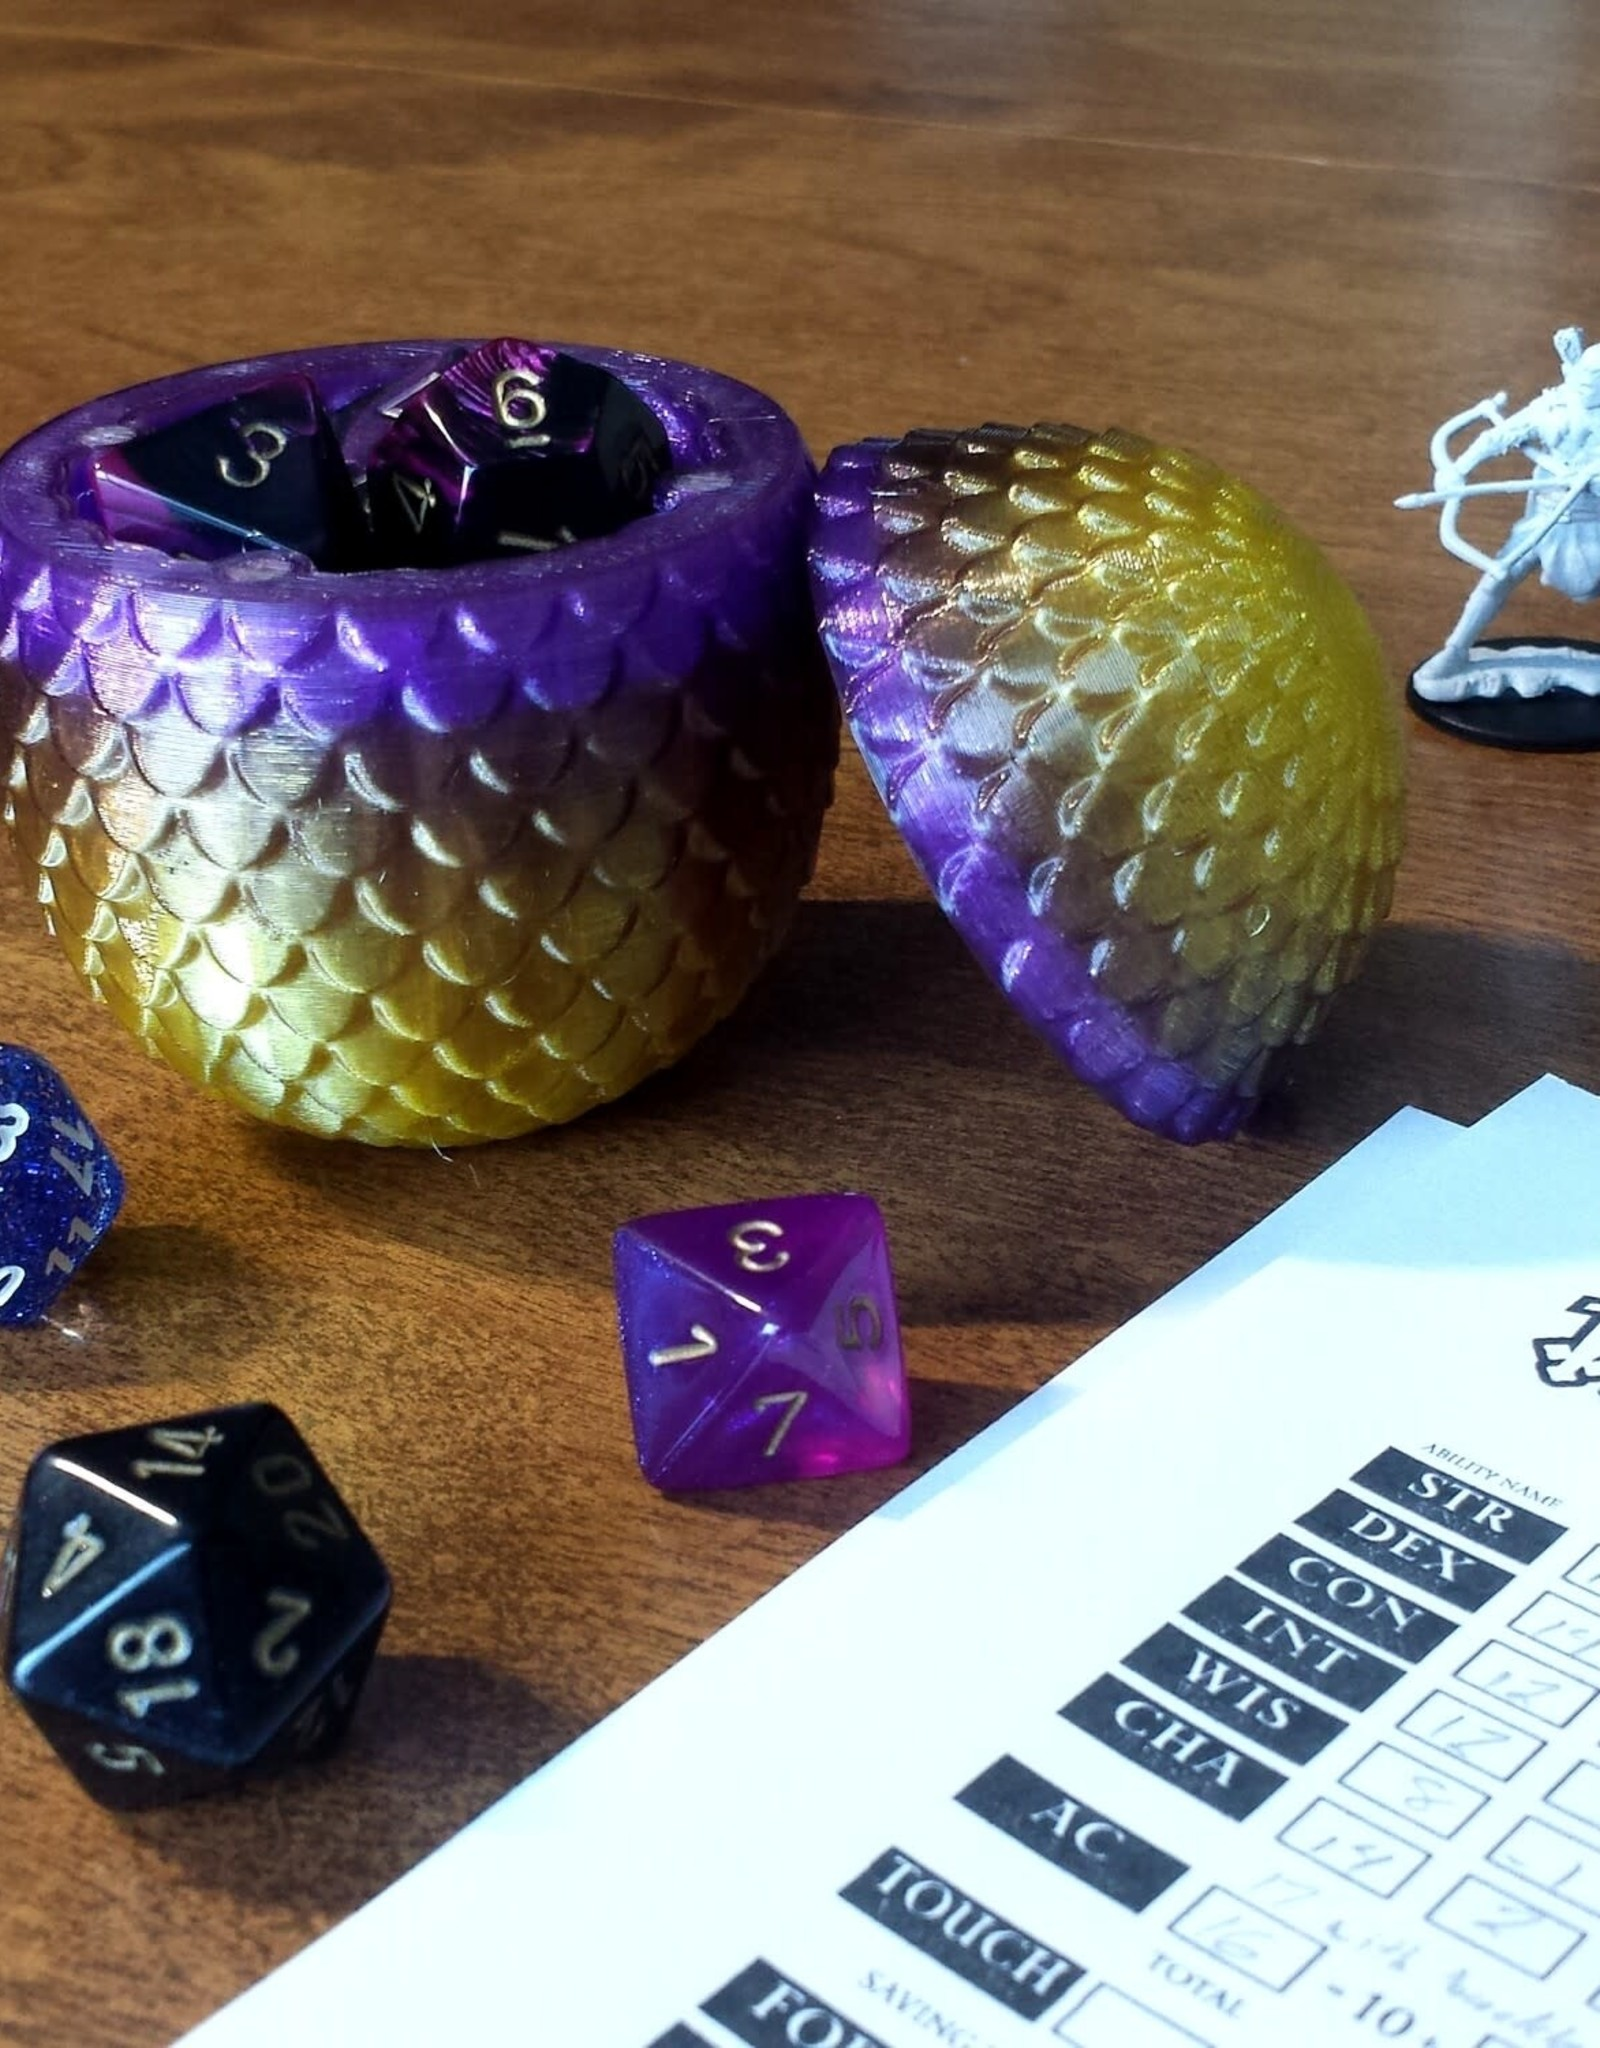 Fantasy by Numbers Dragon Egg - Small, Premium Storm